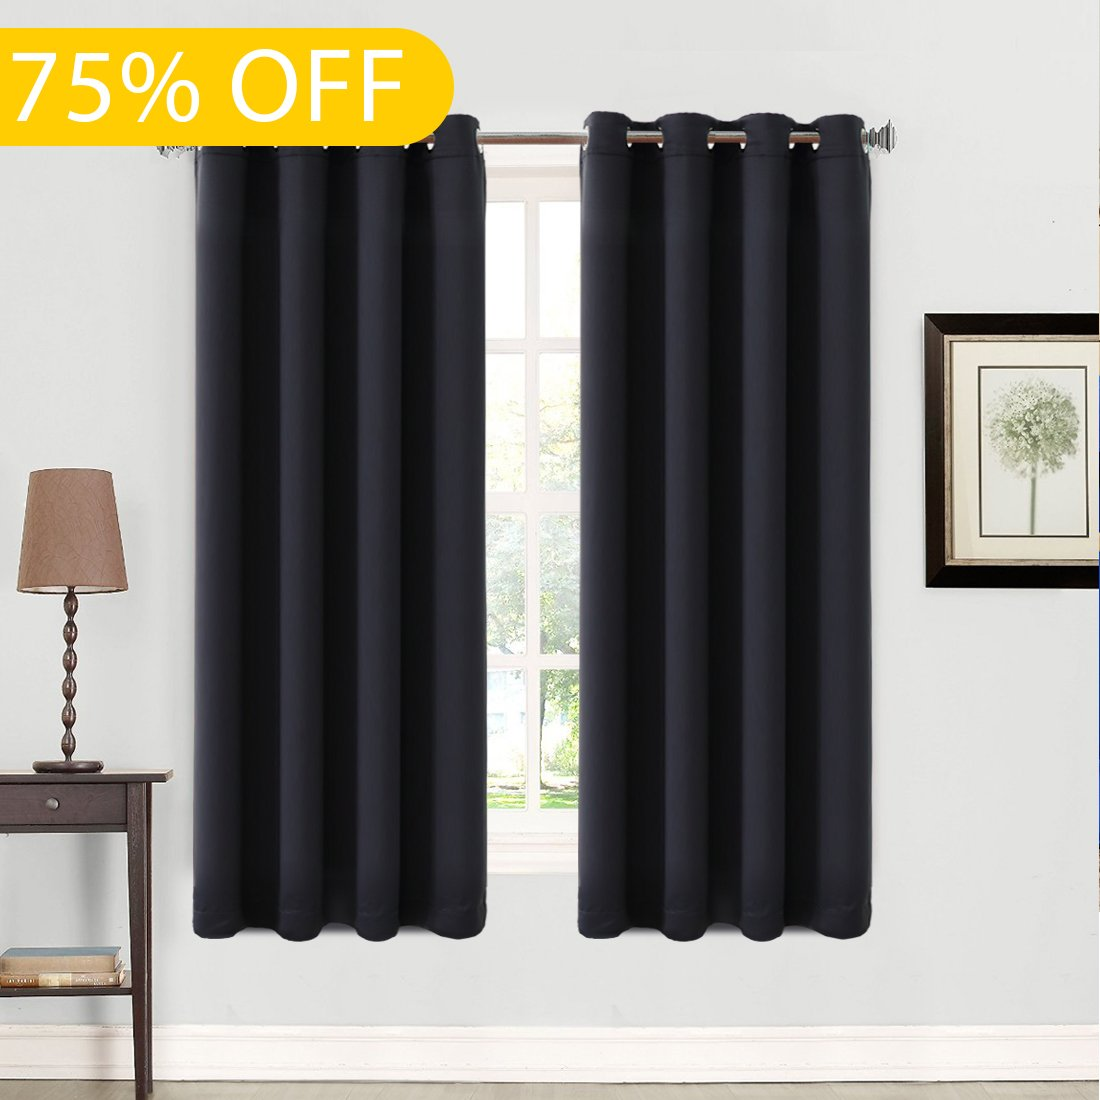 Bedroom Curtains On Amazon Small Bedroom Ideas Nyc Chalkboard Art Bedroom Bedroom Sets For Girls: Black Curtains Drapes Best Deals